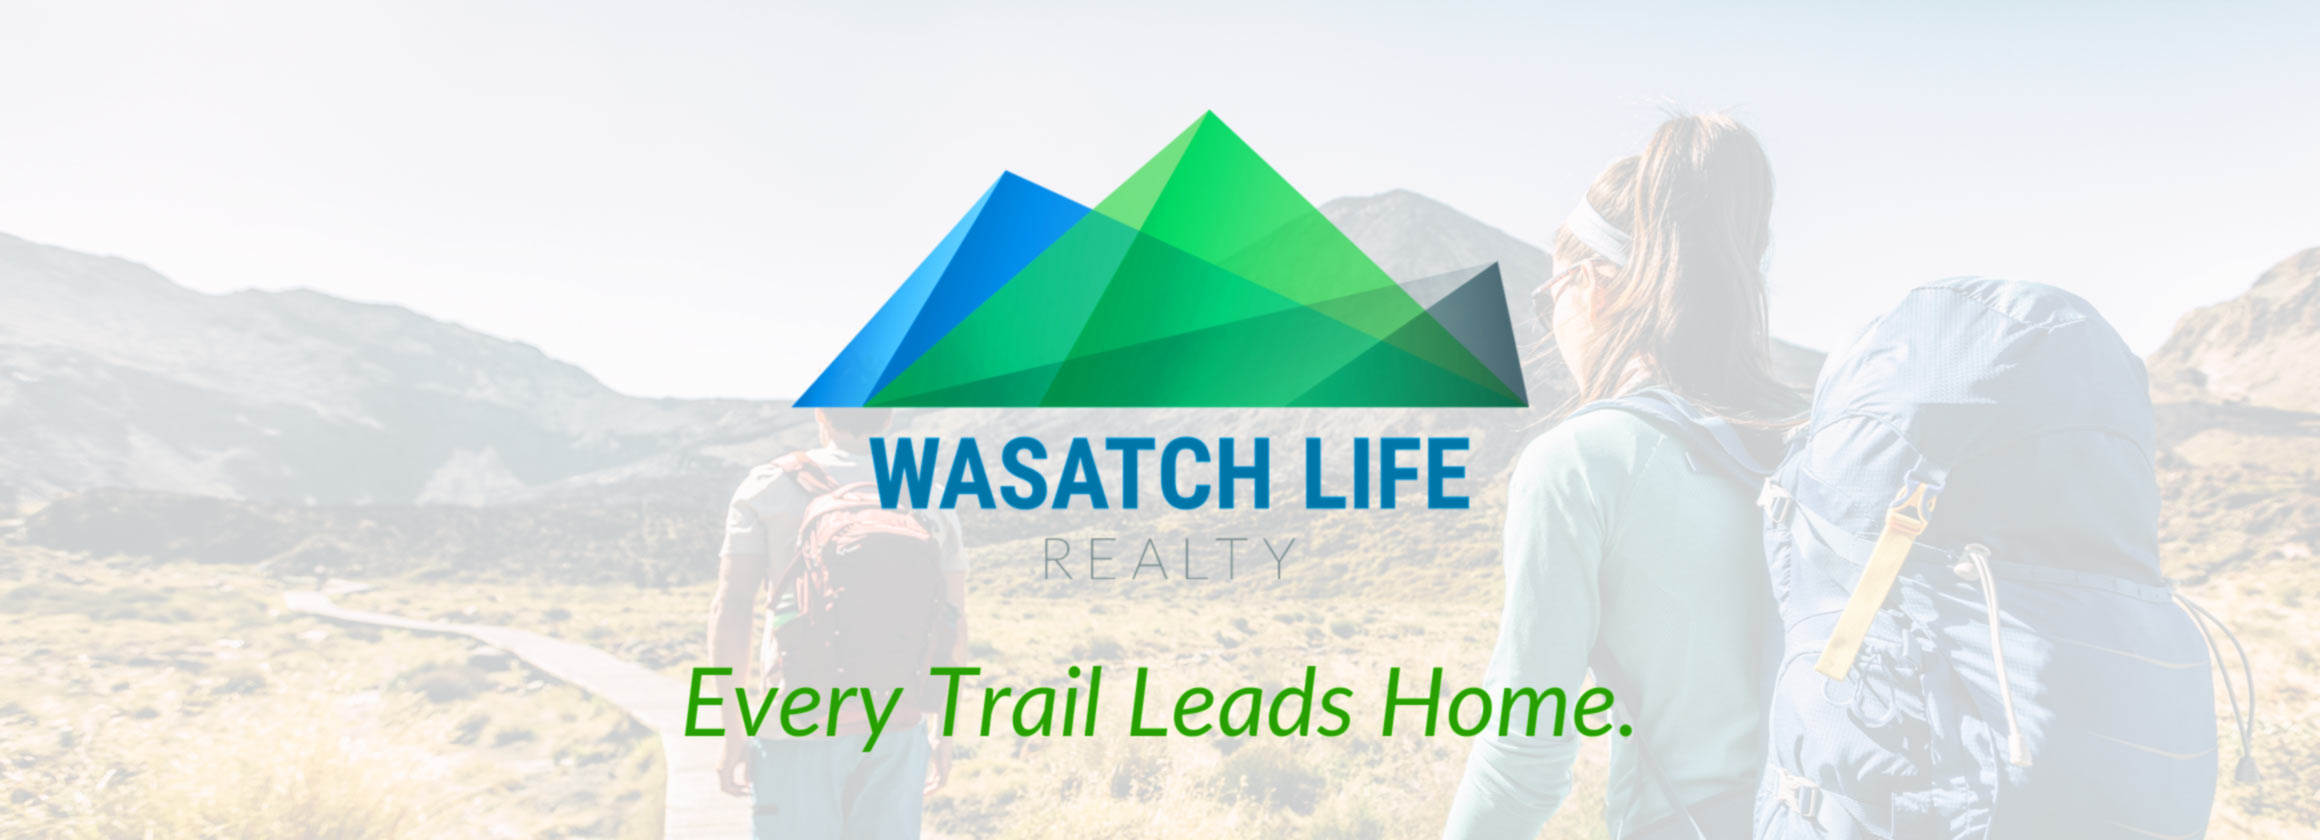 Every trail leads home. - Wasatch Life Realty